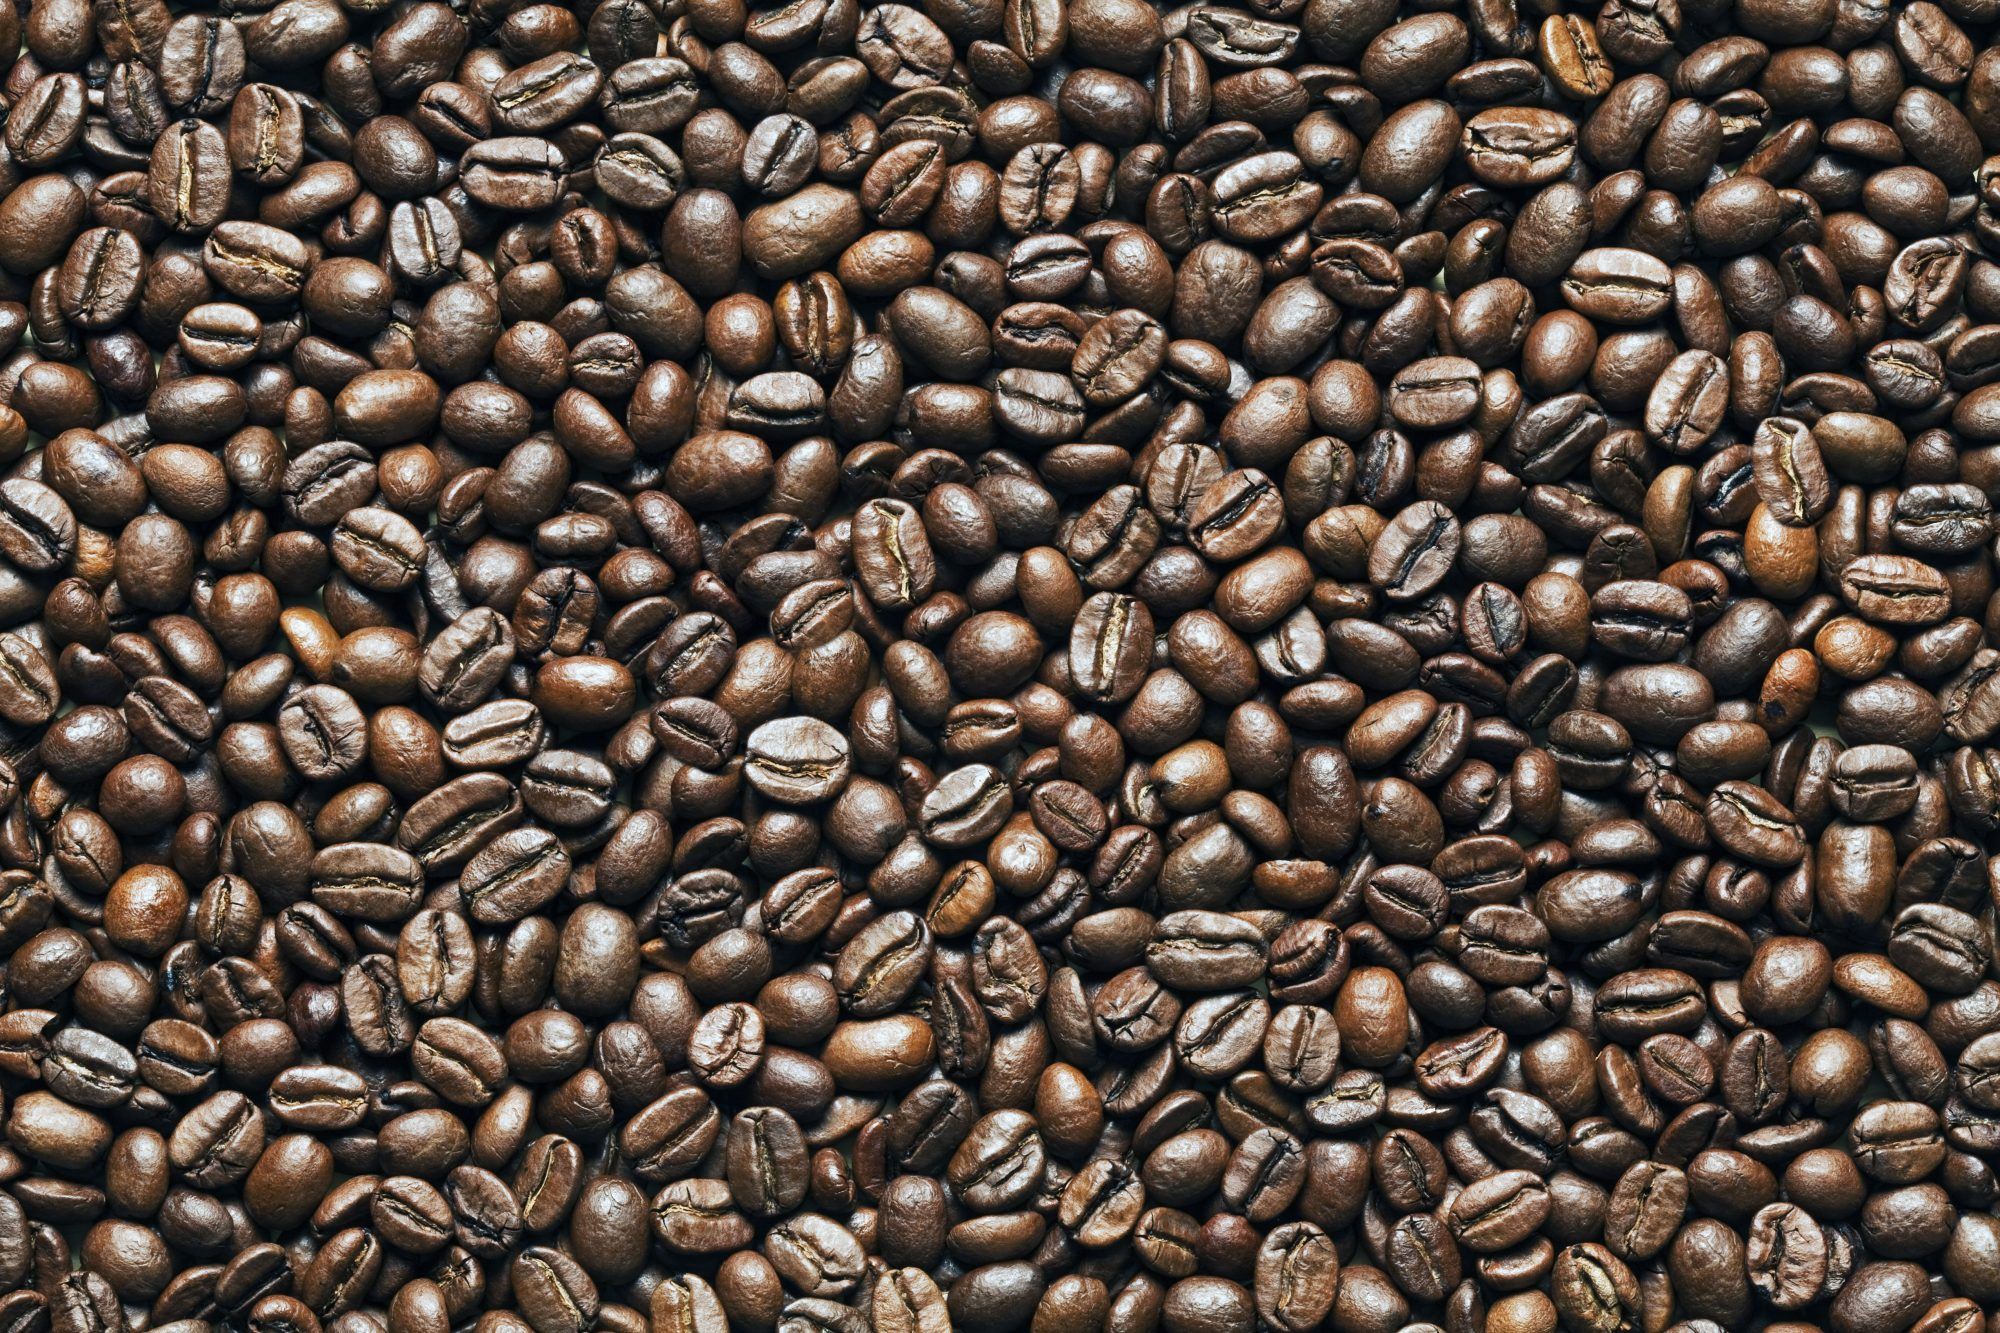 Coffee Beans Getty 4/21/20